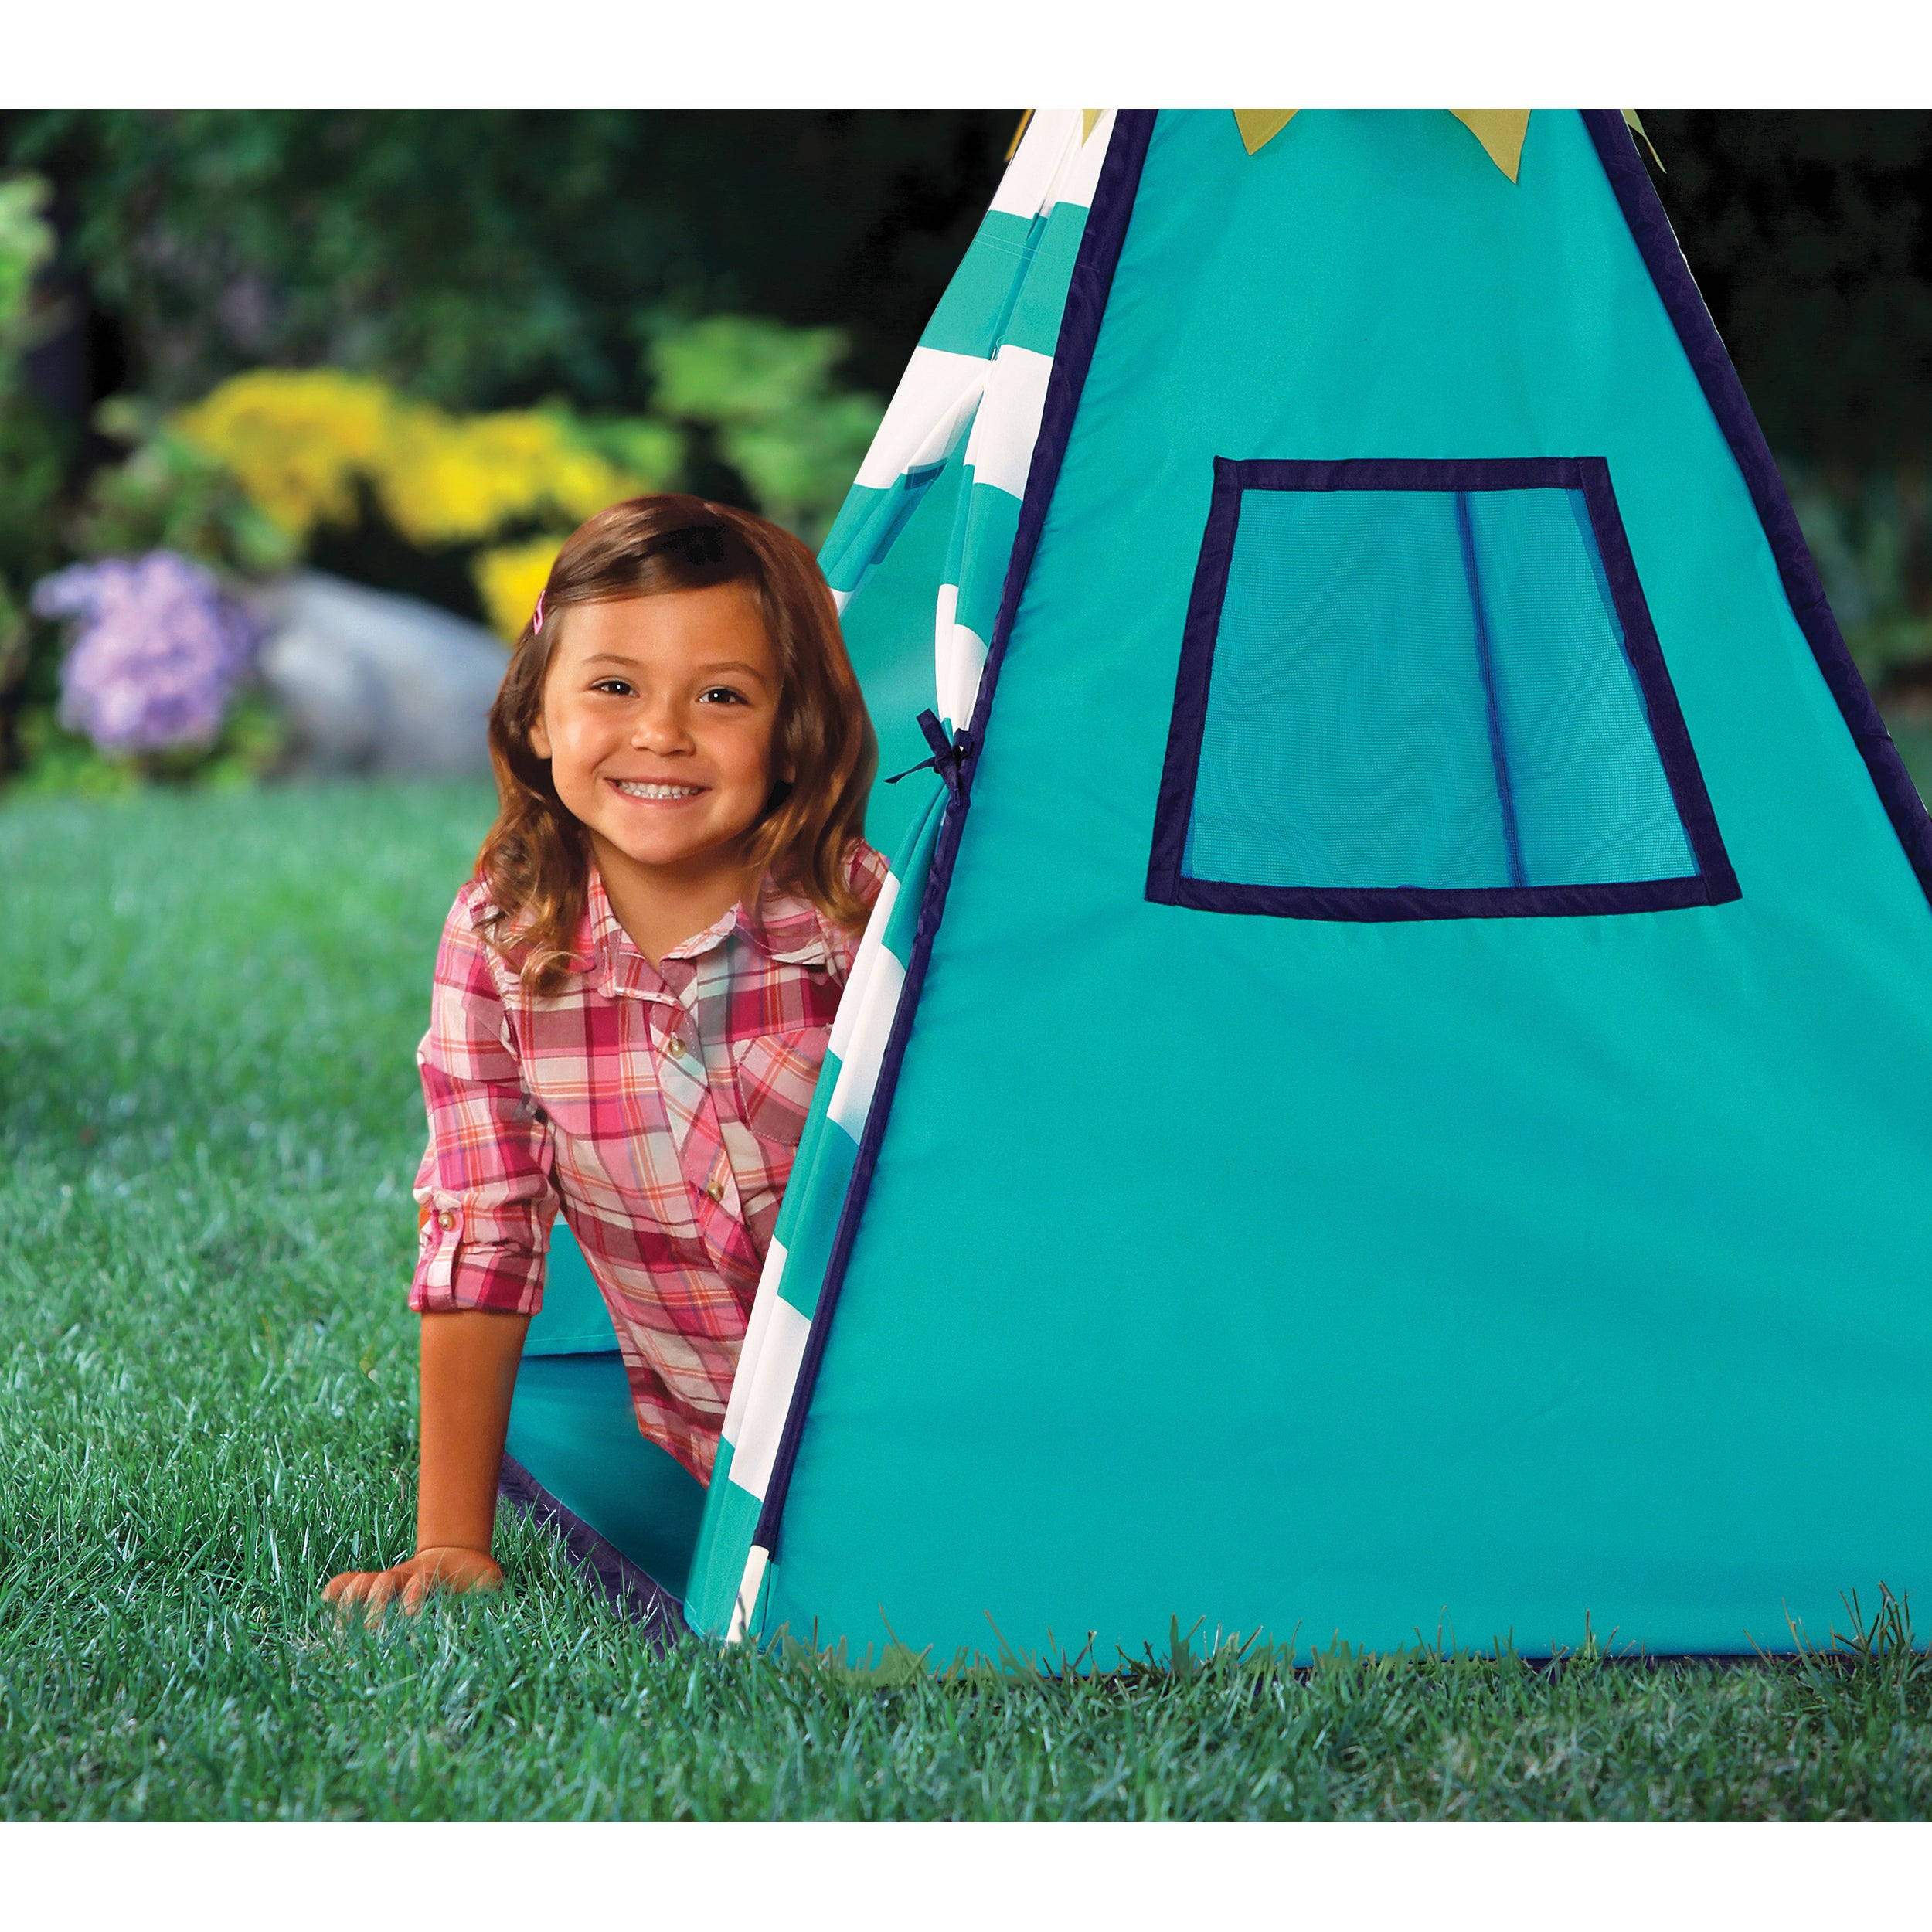 Discovery Kids Turquoise Adventure Teepee Tent - Free Shipping On Orders Over $45 - Overstock.com - 17653840  sc 1 st  Overstock.com & Discovery Kids Turquoise Adventure Teepee Tent - Free Shipping On ...